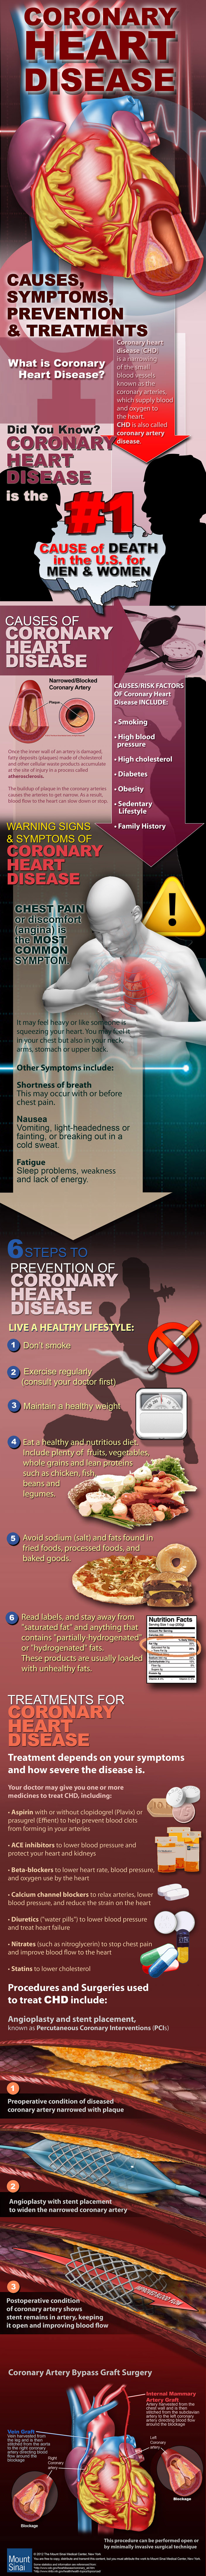 Coronary Heart Disease - Also Known as Coronary Artery Disease -  Causes, Symptoms, Prevention and Treatments